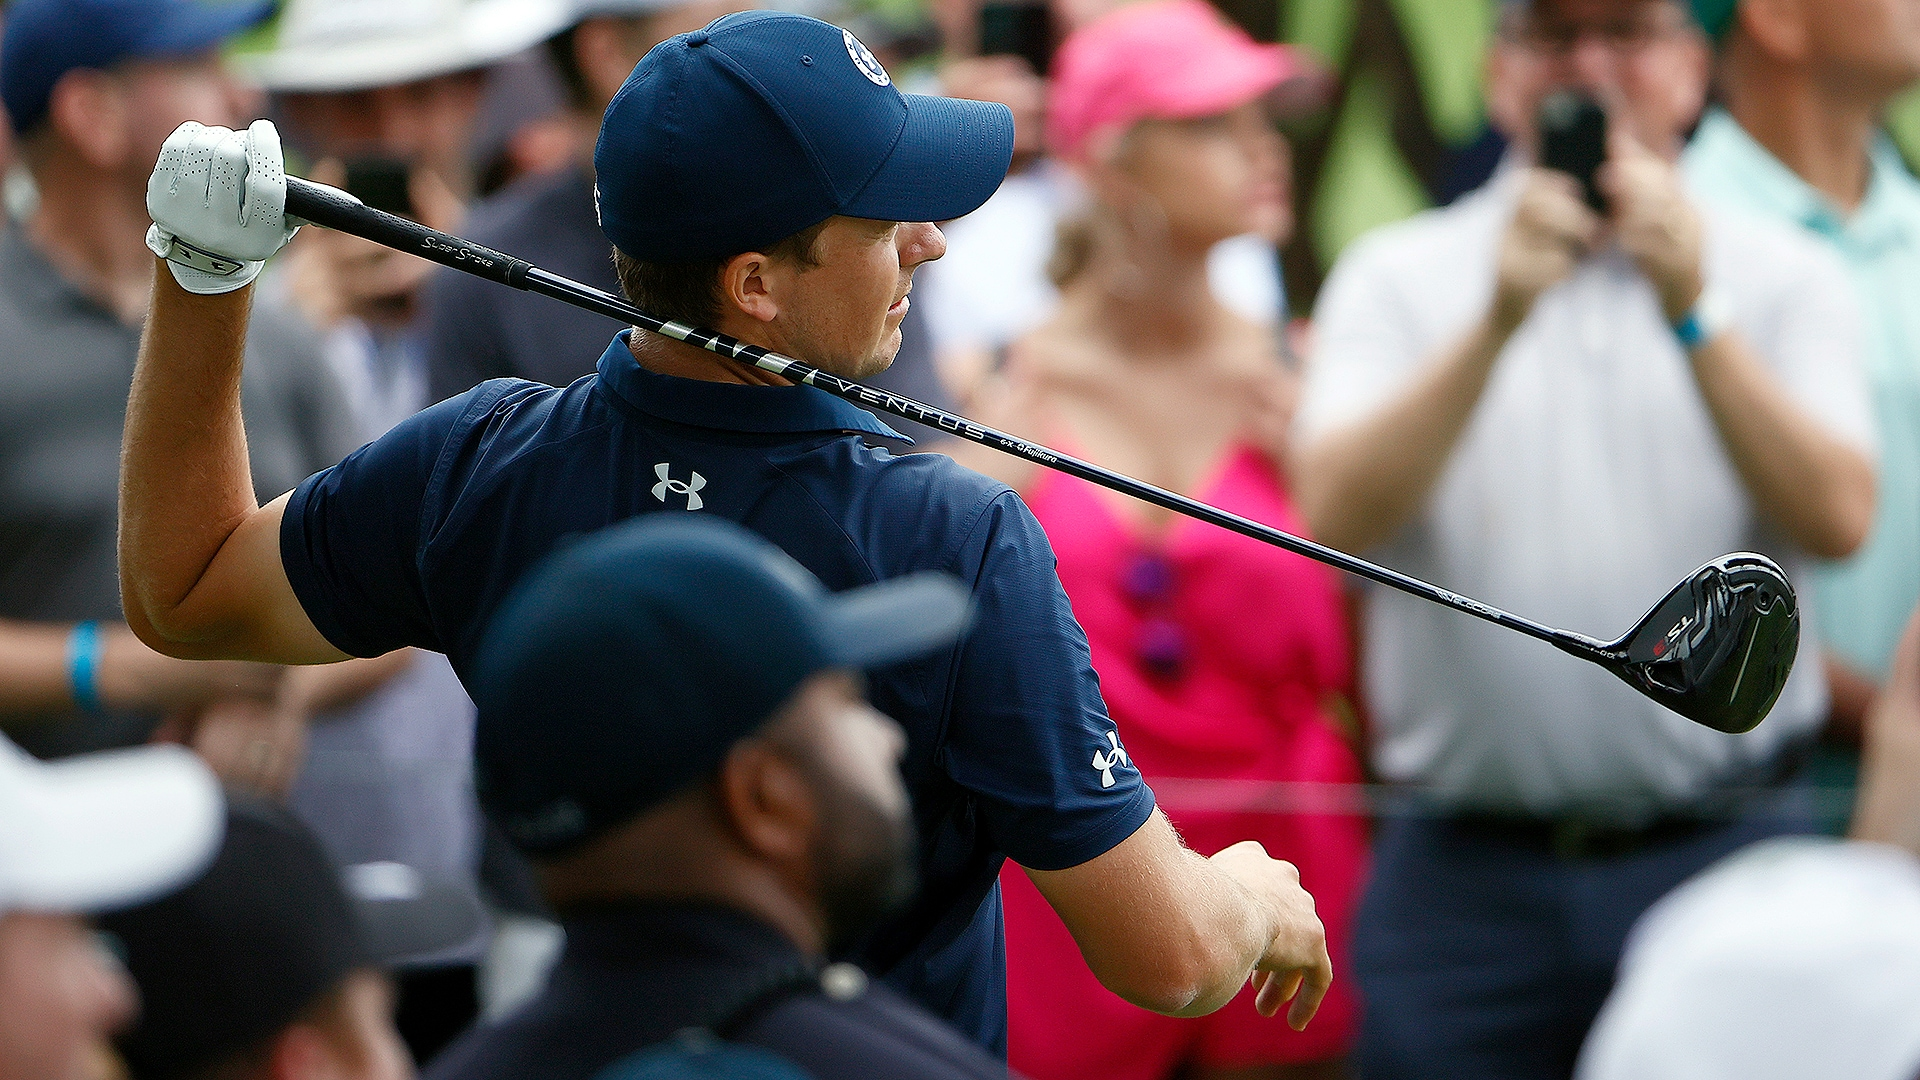 With 'no freaking clue' where his ball was going, Jordan Spieth struggles Sunday at Colonial